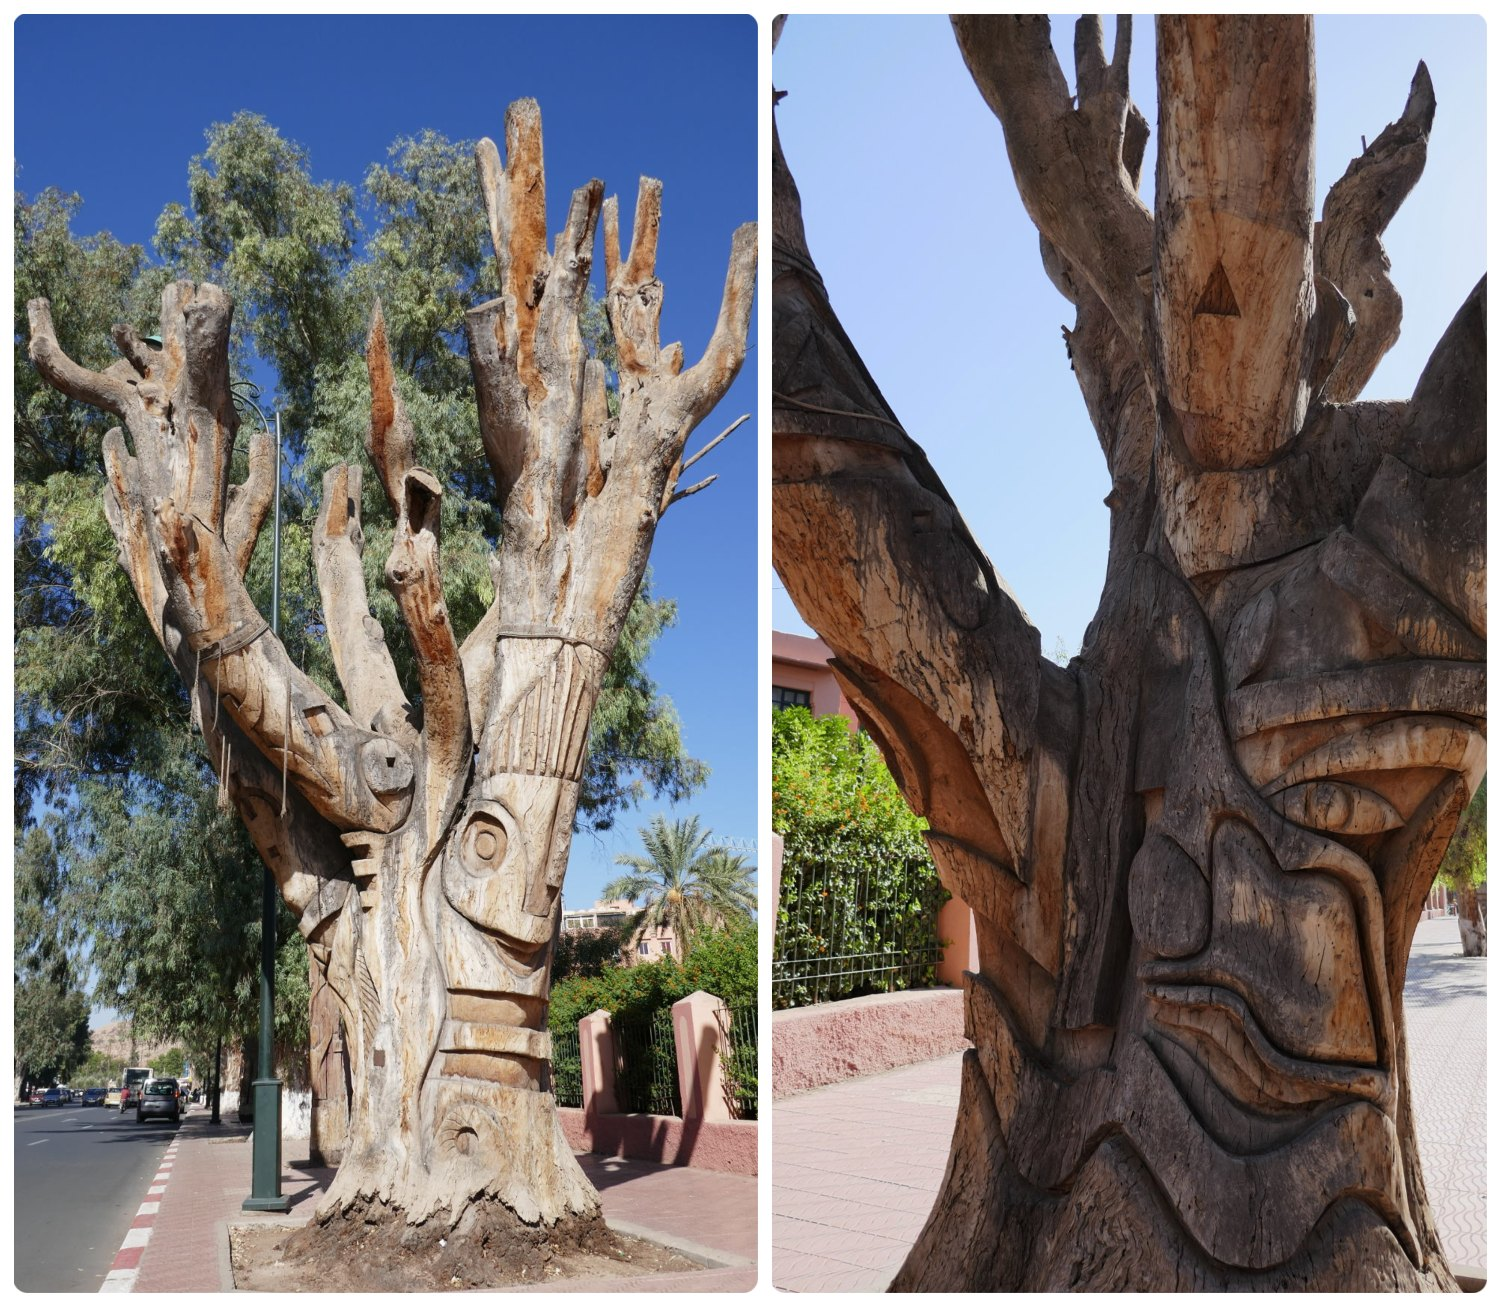 Dead Tree Sculpture in New Town, Marrakech, Morocco. Don't miss the creative artwork that gives dead trees in New town Marrakech a second life!